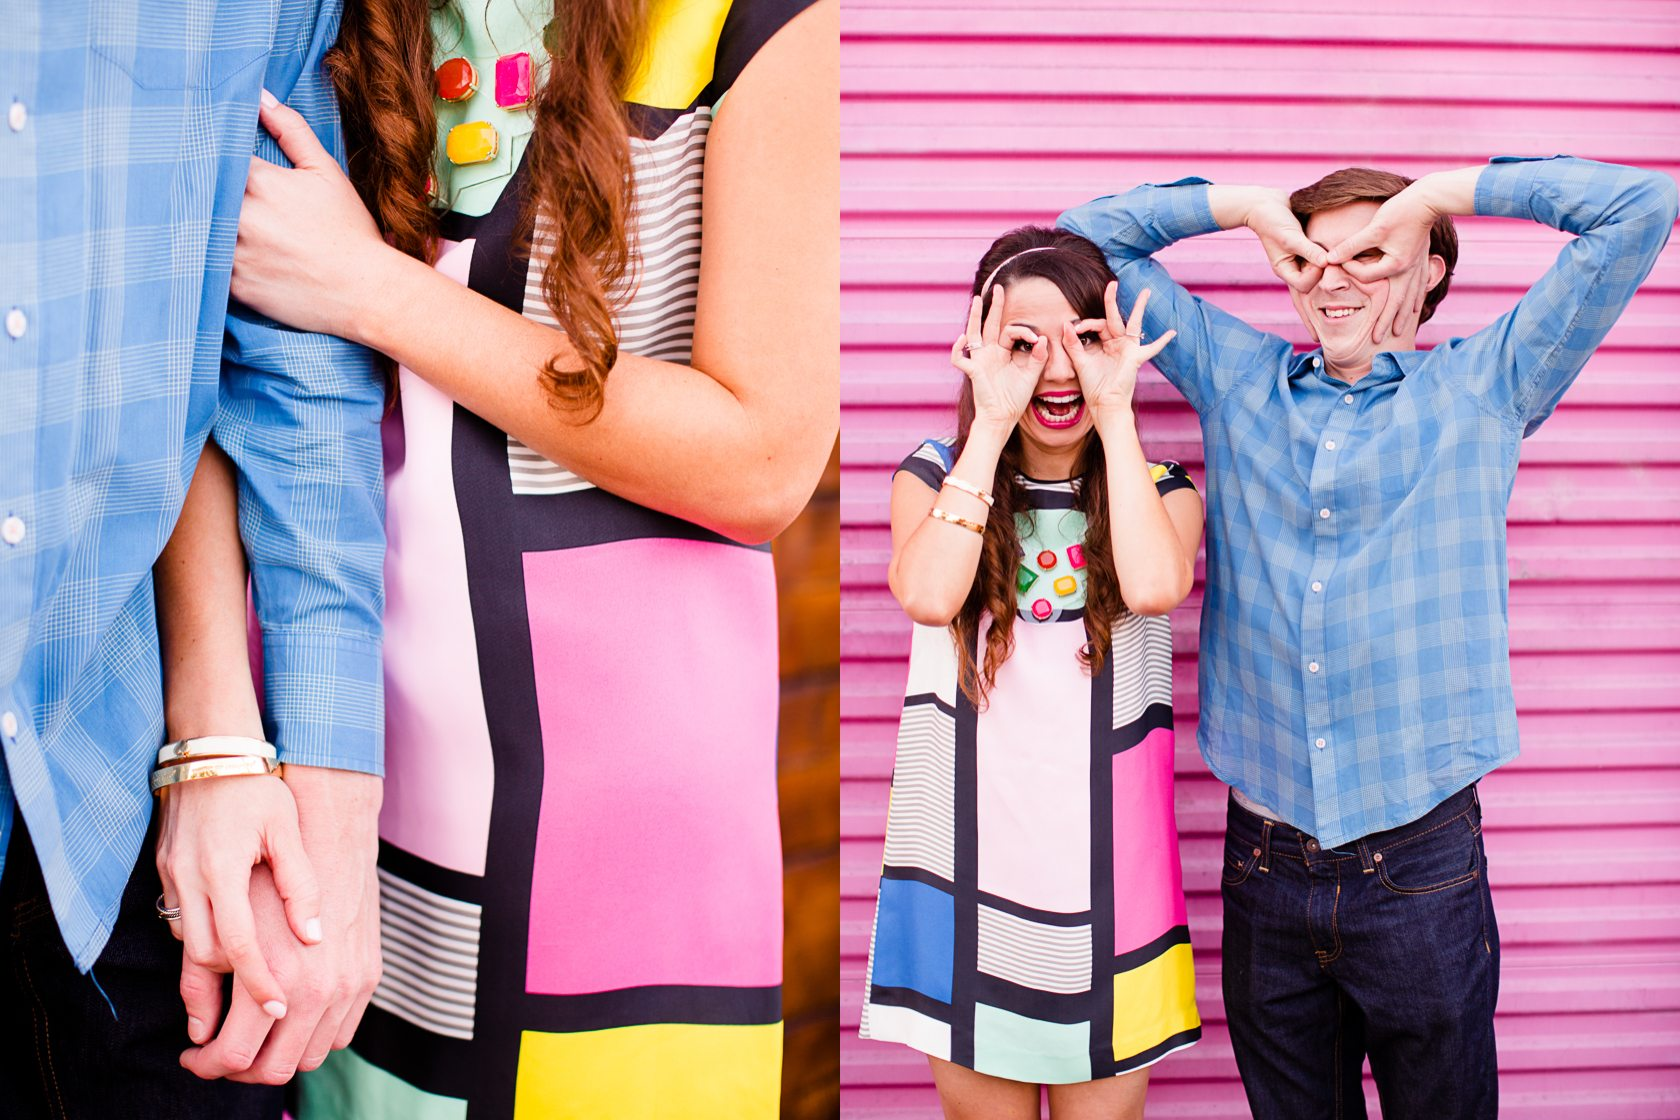 Kate_Spade_Engagement_Session_34.jpg